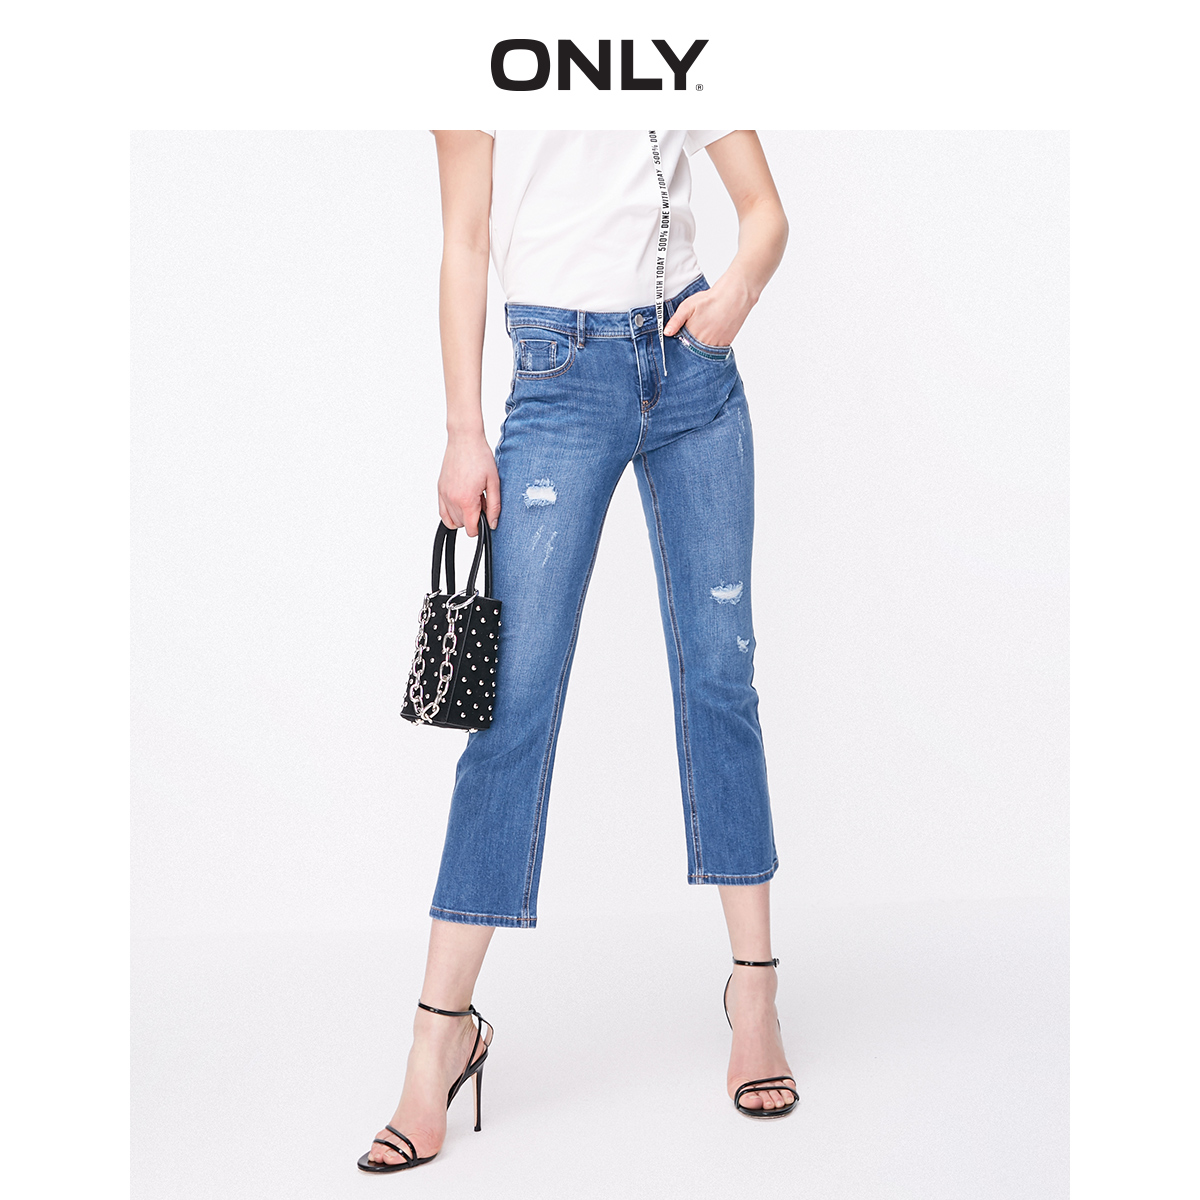 ONLY  Women's Light Color Low-rise Ripped Slightly Flared Crop Jeans | 119149623